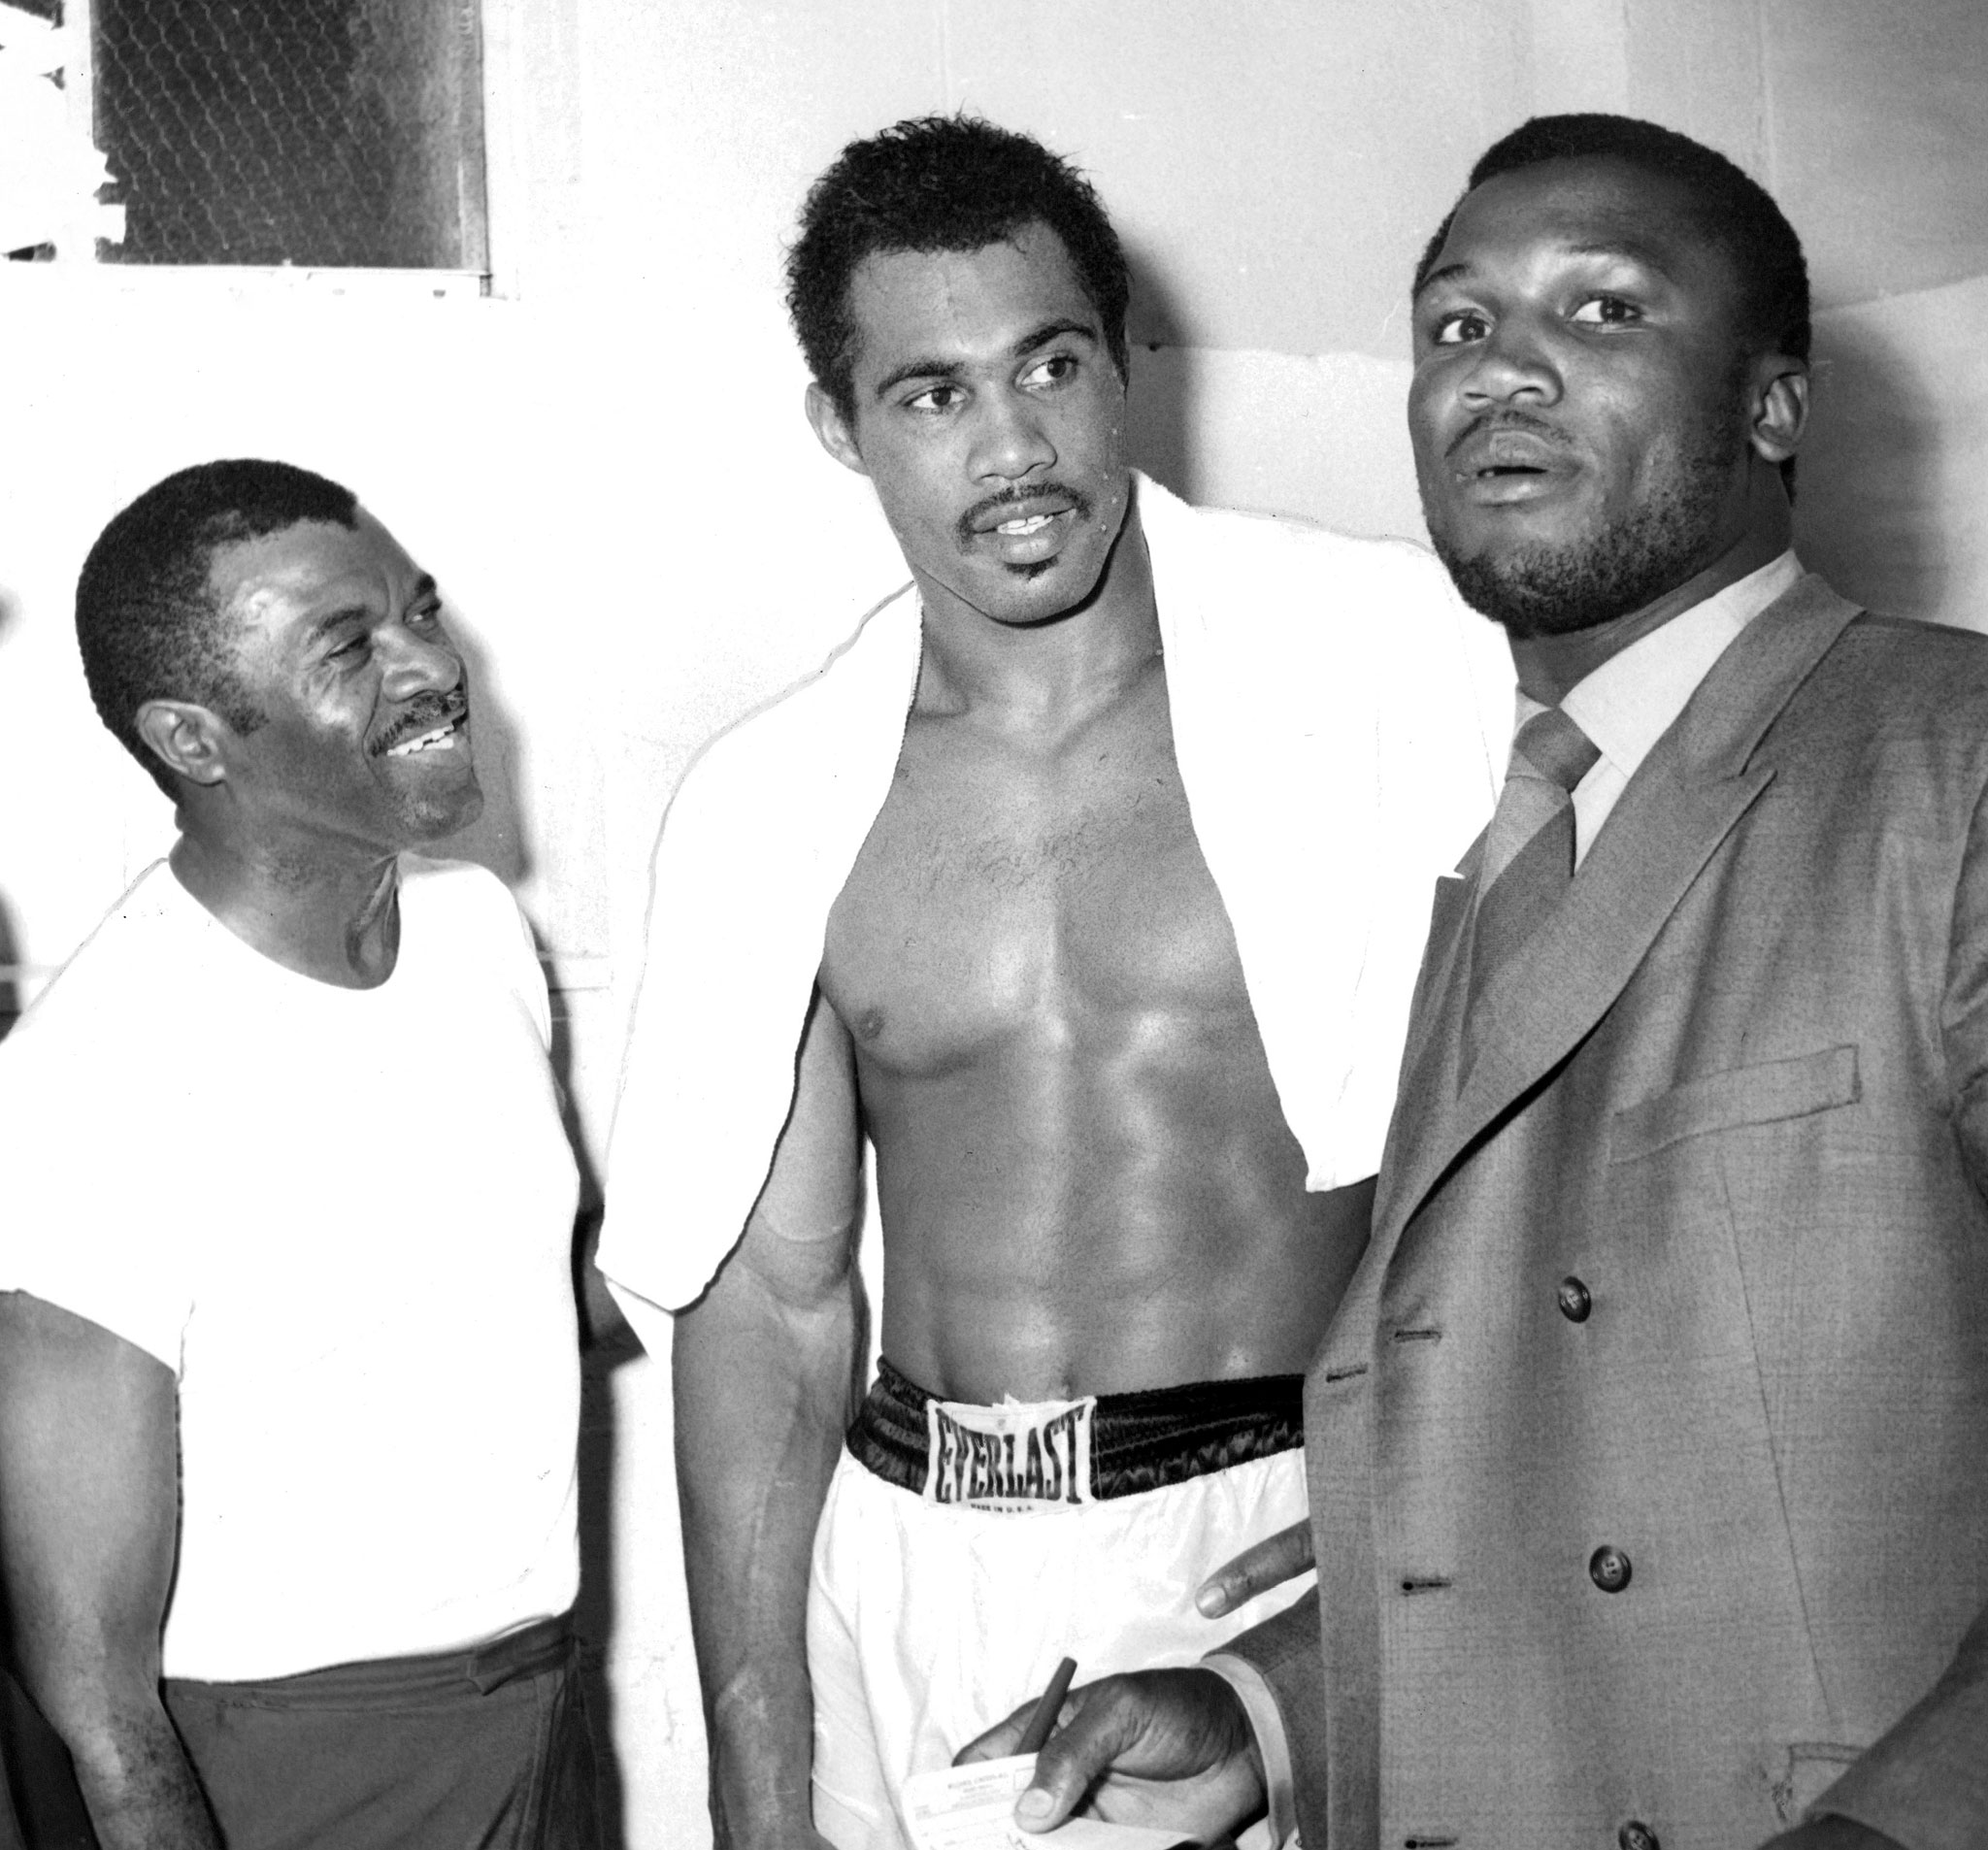 Ringo Bonavena El C eon Sin Corona additionally Mohammad Ali The Greatest together with Quotes About Ali George Foreman besides Muhammad Ali together with 5 Toughest Fighters In History 42342. on oscar bonavena joe frazier